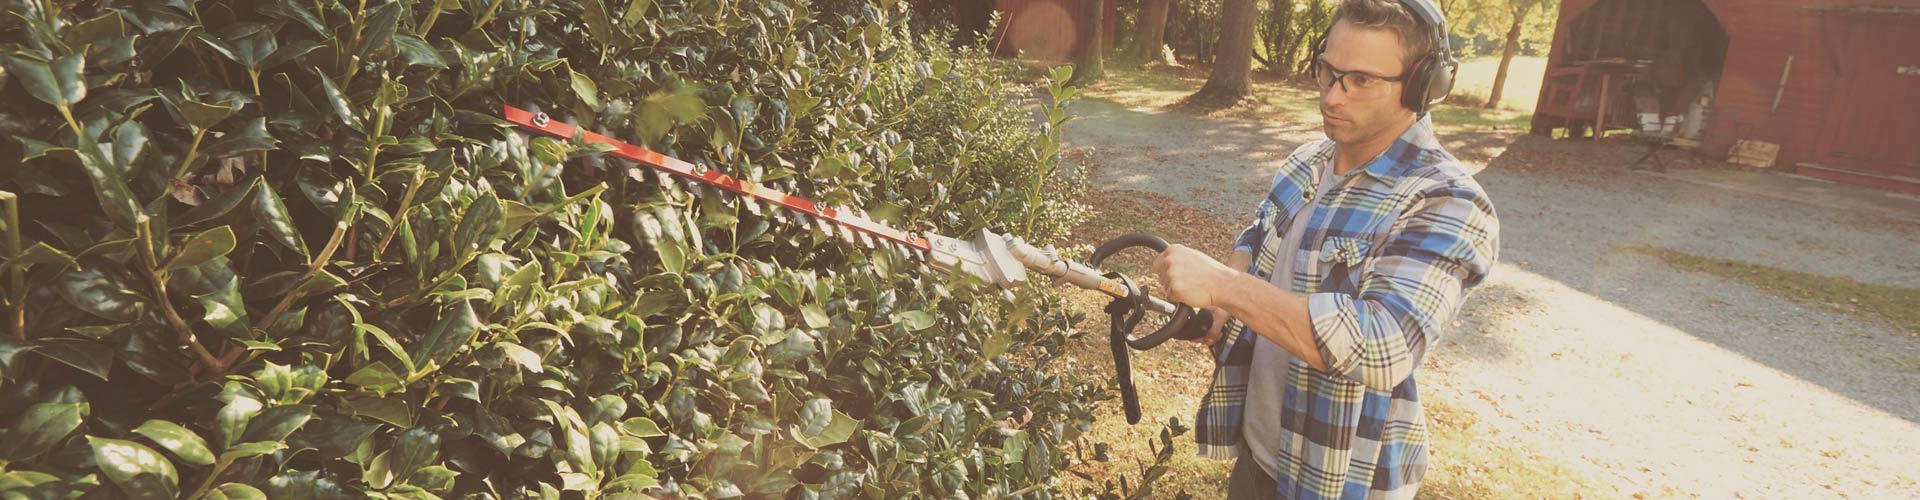 Jonsered Hedge Trimmers